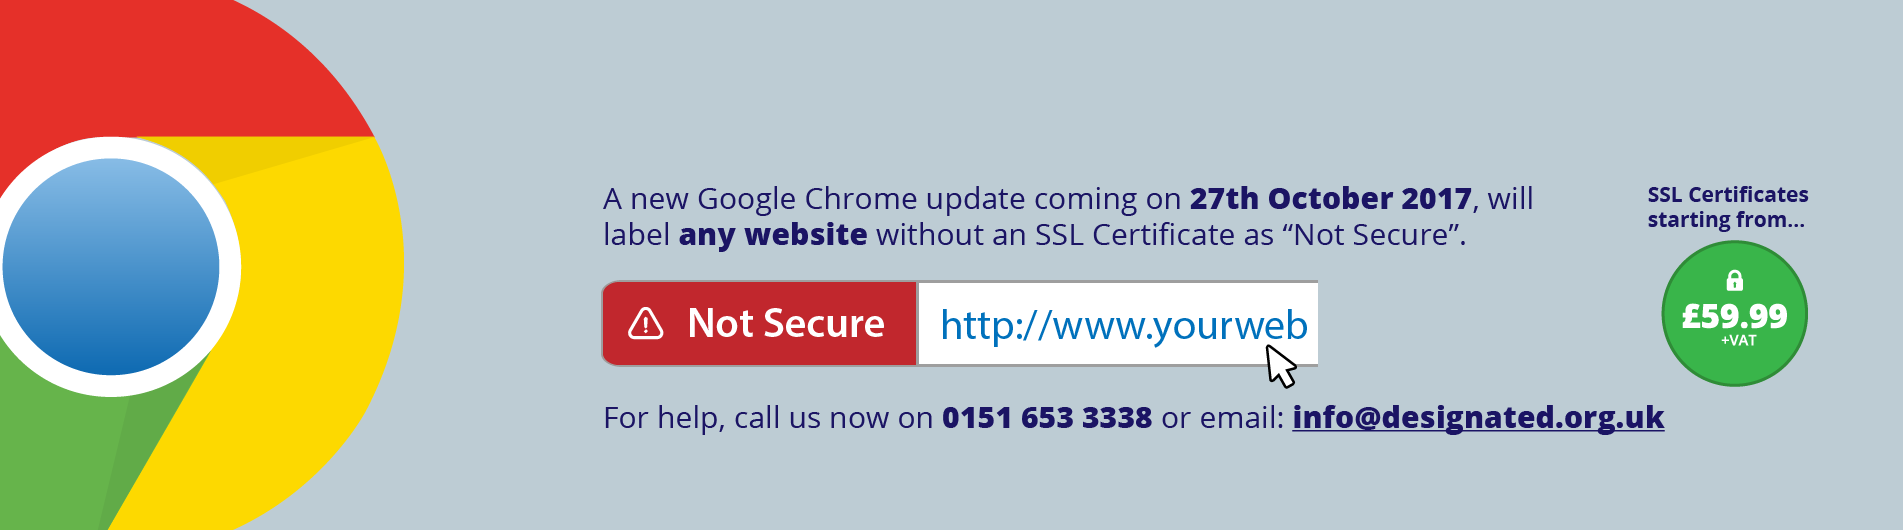 Ssl Certificates Designated Web Design Digital Marketing In